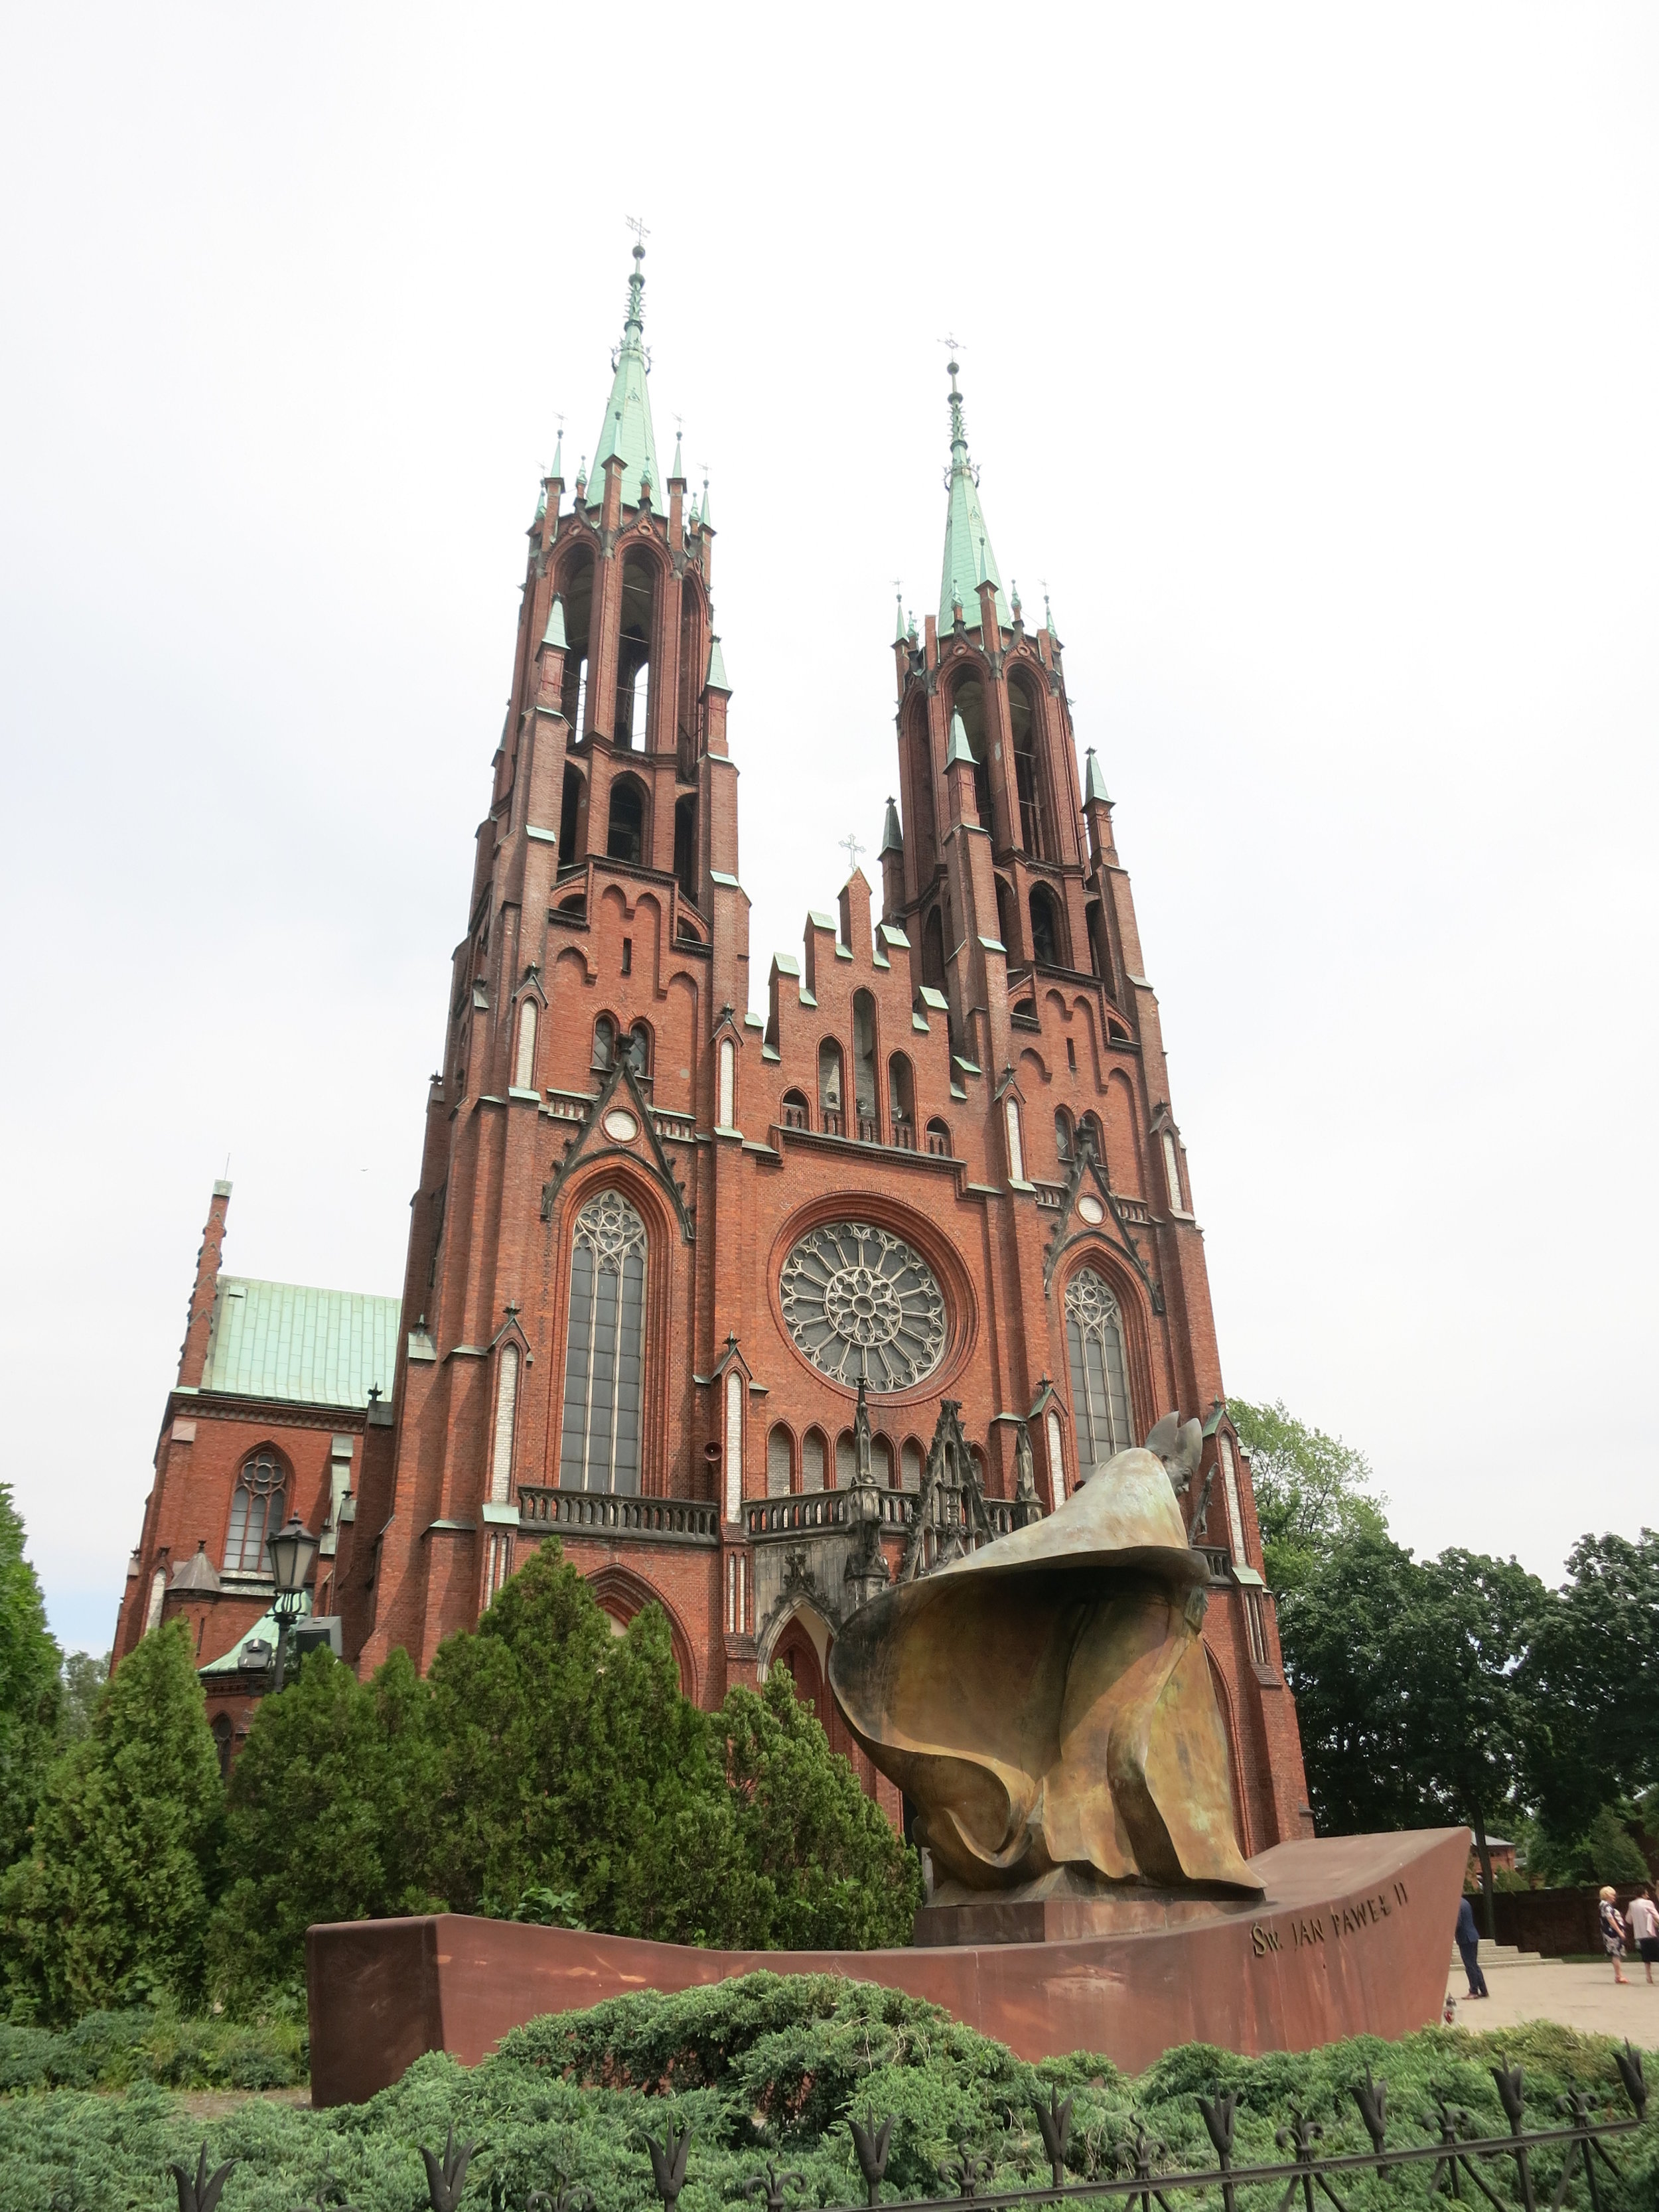 The cathedral was modeled after the one in Cologne,Germany.